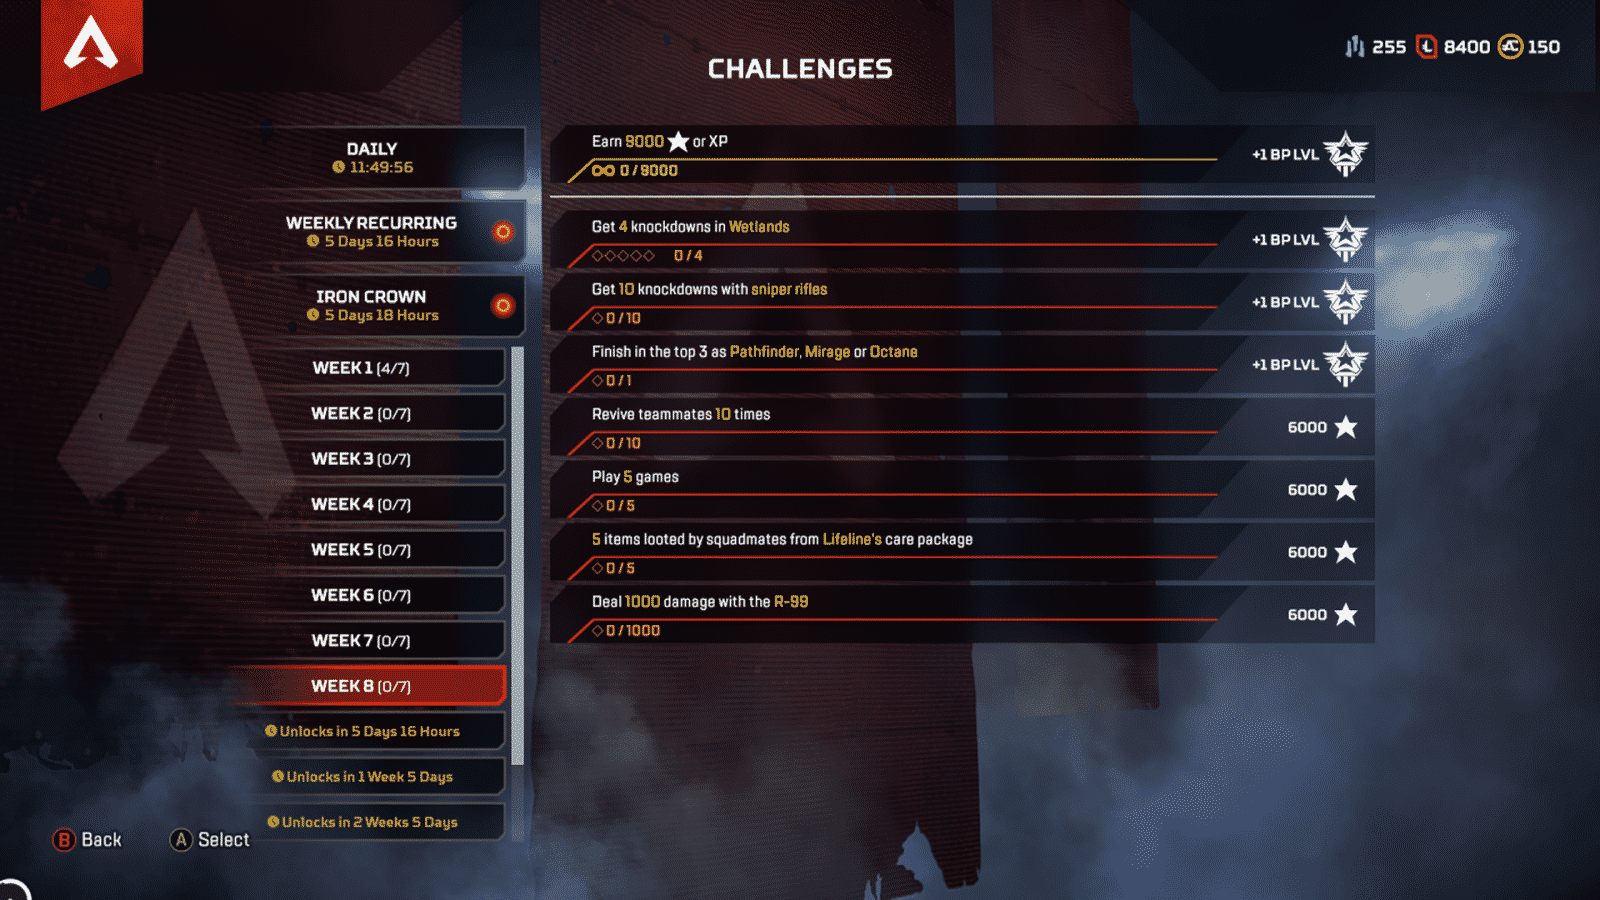 Weely 8 challenges for Apex Legends task